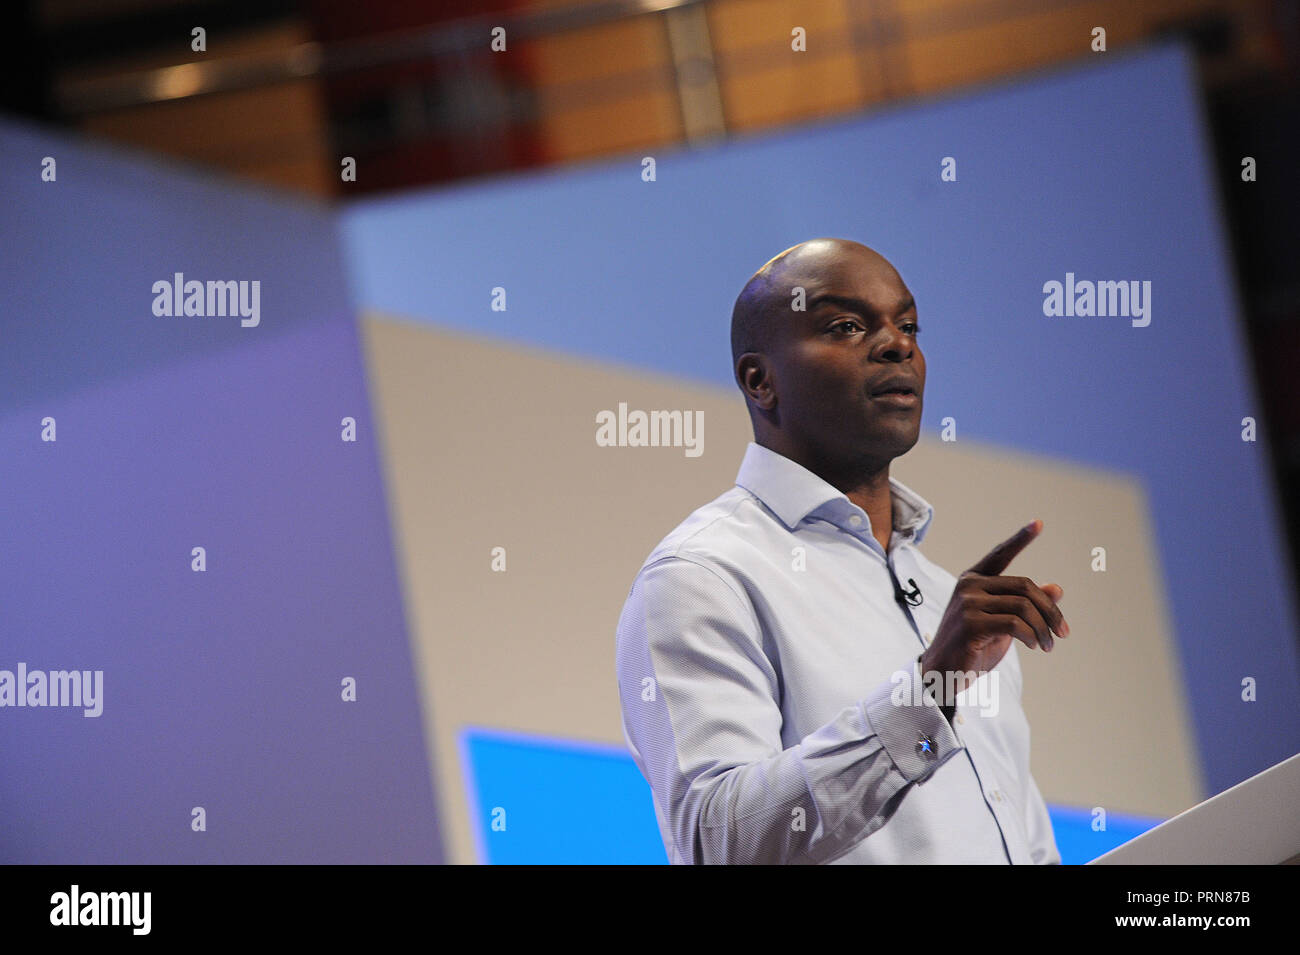 Birmingham, England. 3rd October, 2018.  Shaun Bailey who has been selected as the Conservative candidate for Mayor of London, speaking before the  keynote speech of Theresa May MP, Prime Minister and Leader of the Conservative Party, on the closing session of the fourth day of the Conservative Party annual conference at the ICC.  Kevin Hayes/Alamy Live News - Stock Image